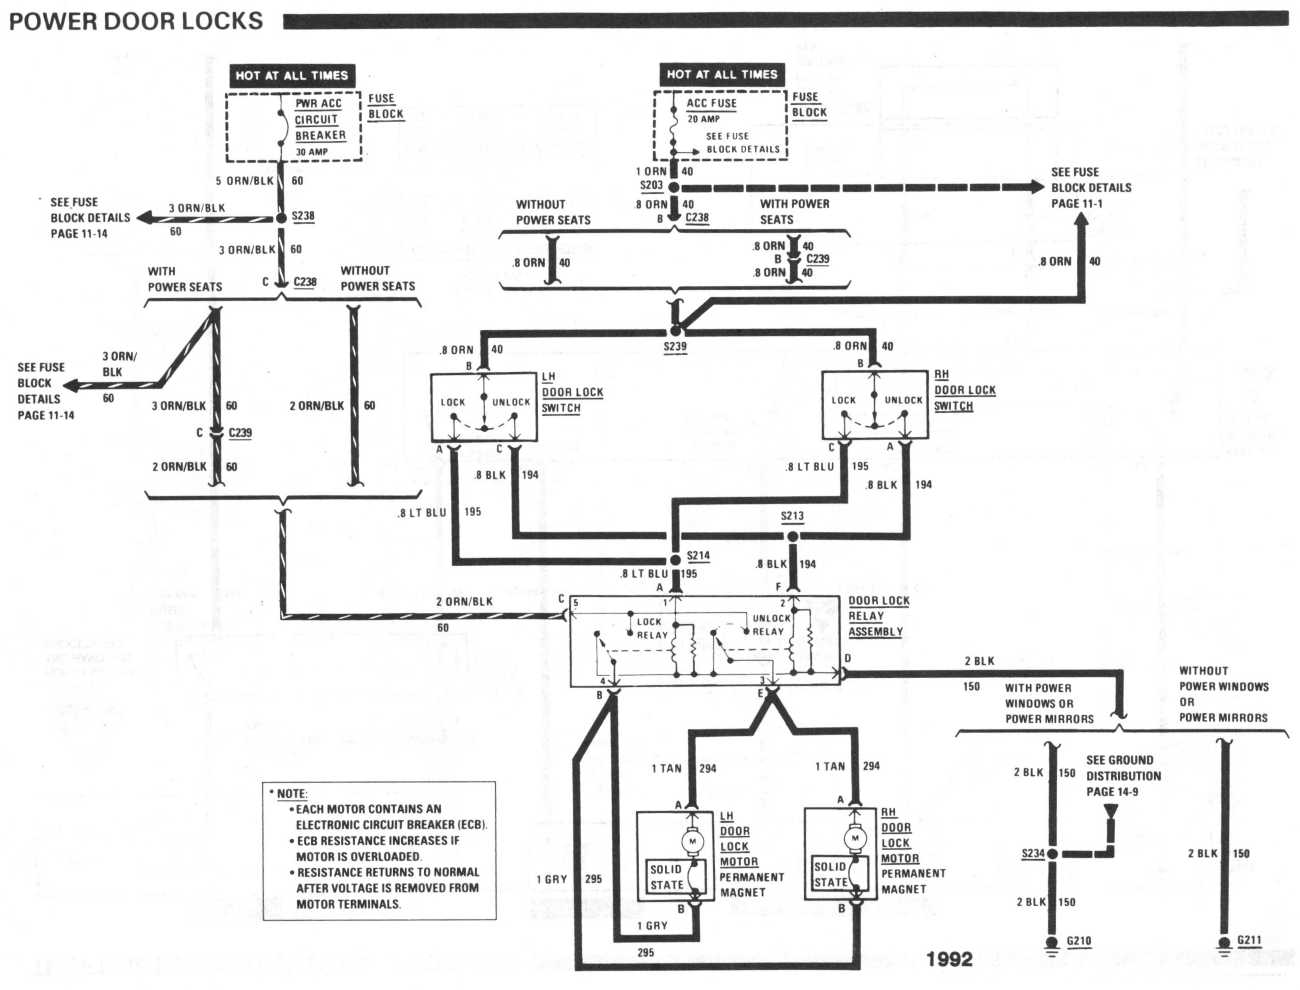 2001 f150 power door lock wiring diagram   40 wiring